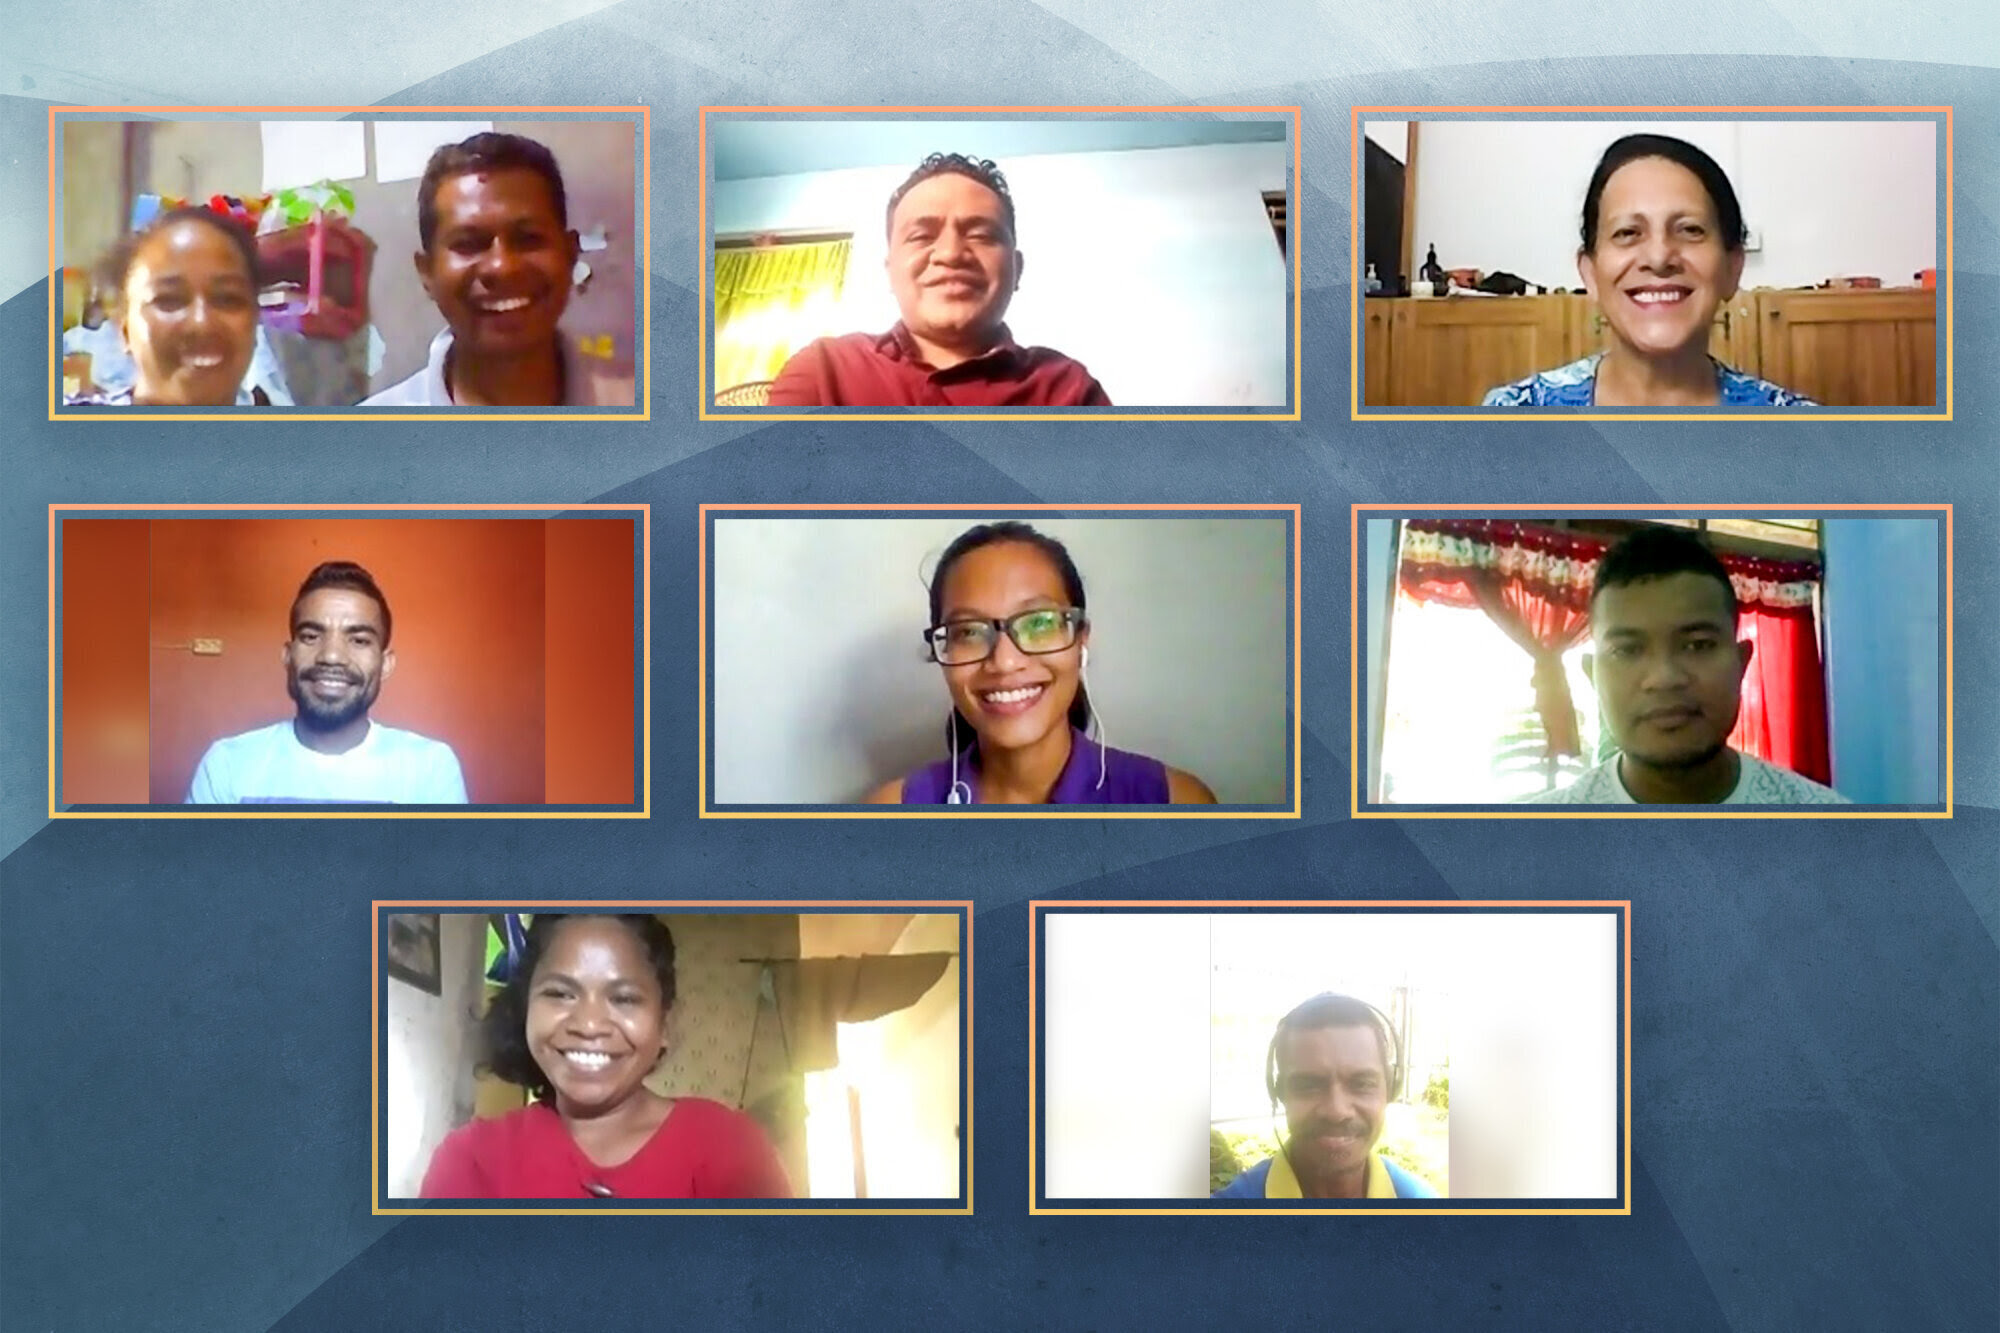 The nine members of the newly elected National Spiritual Assembly of the Bahá'ís of Timor-Leste gather online for their first meeting.